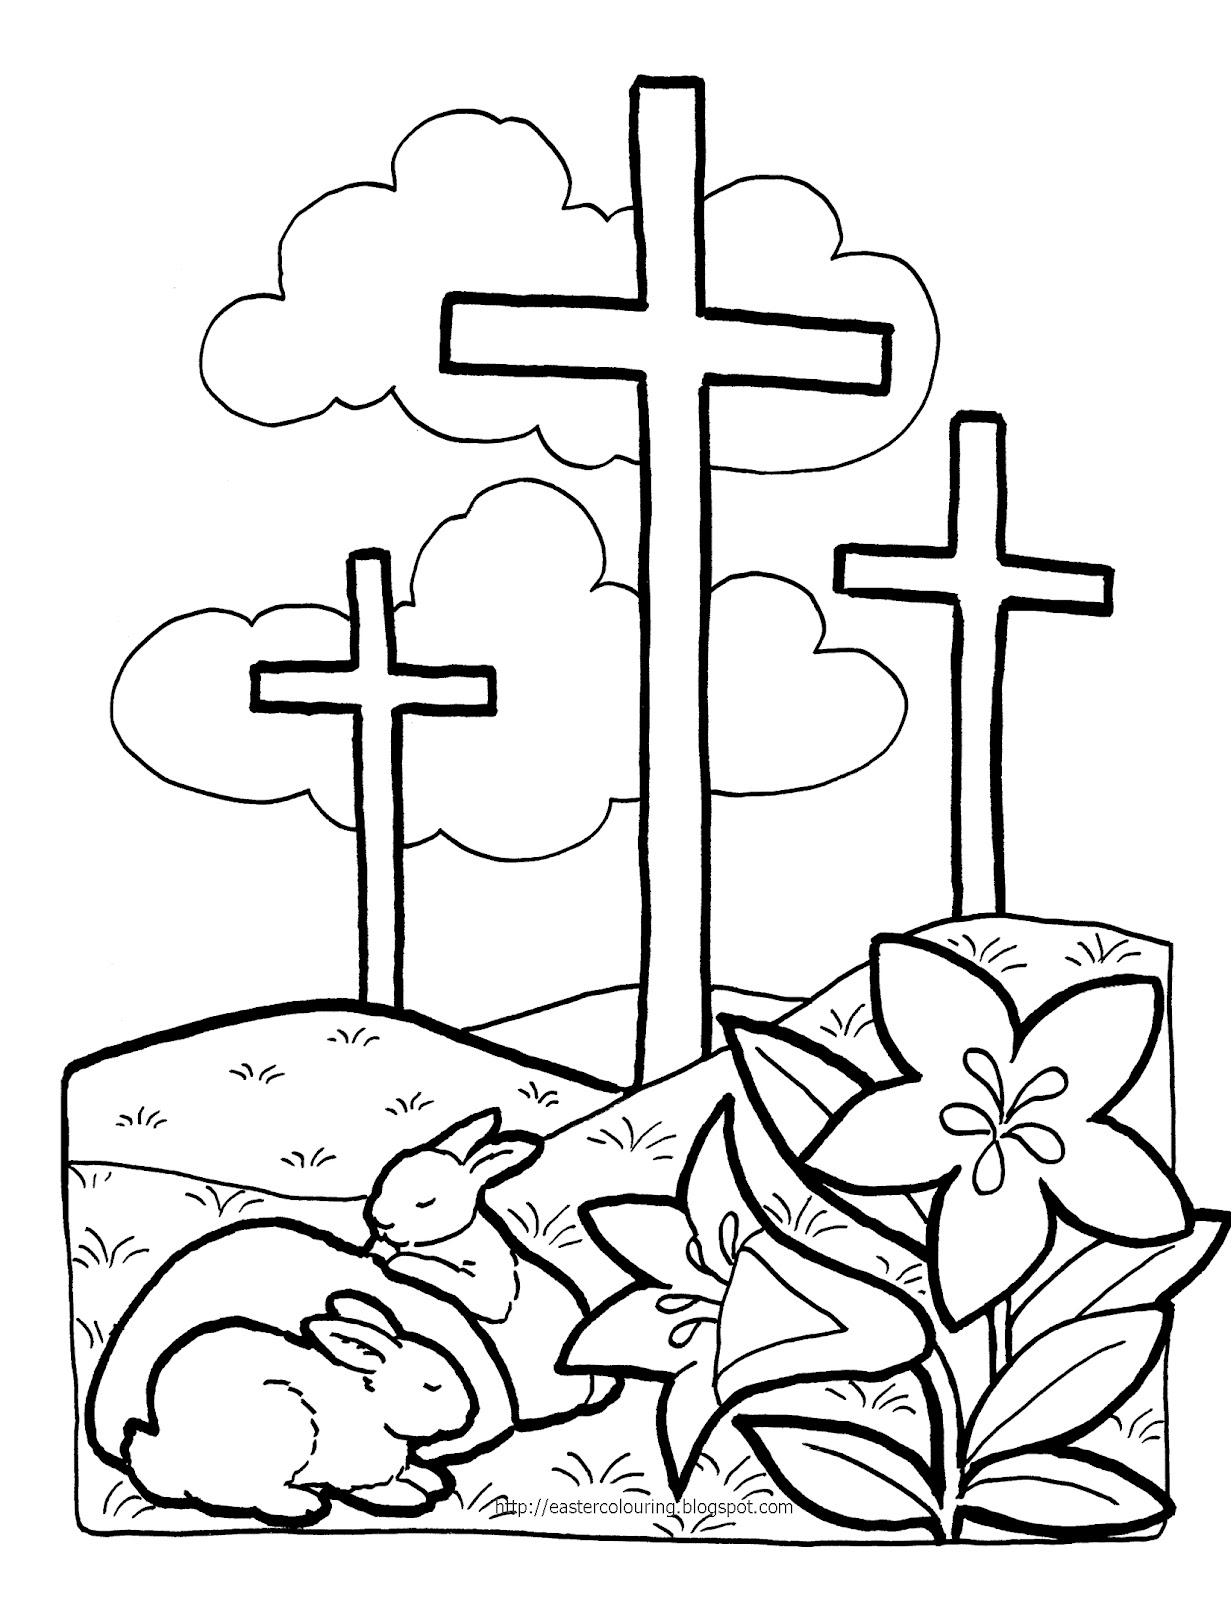 easter printable coloring pages christian - photo#11